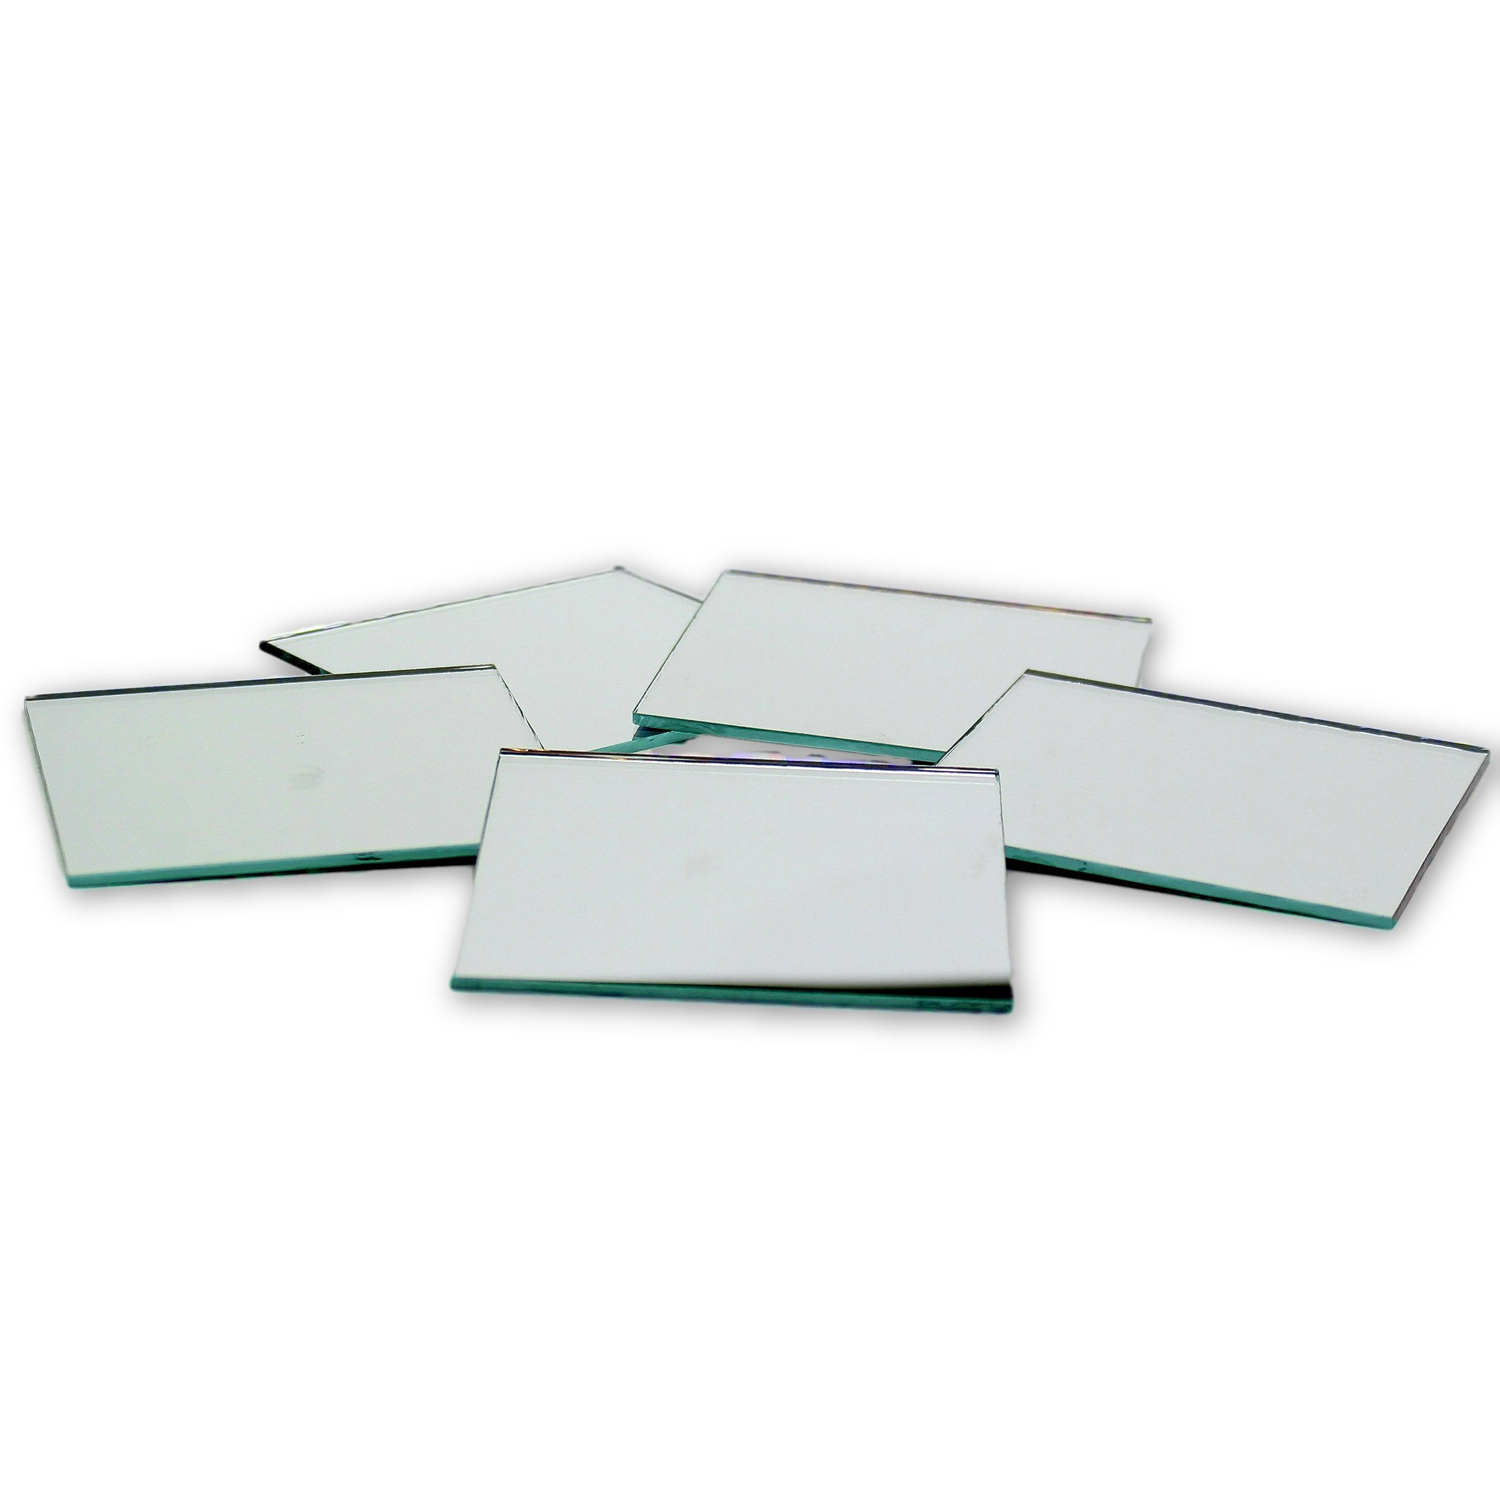 Small Mirror Pieces: 3 Inch Craft Glass Small Square Craft Mirrors Bulk 100